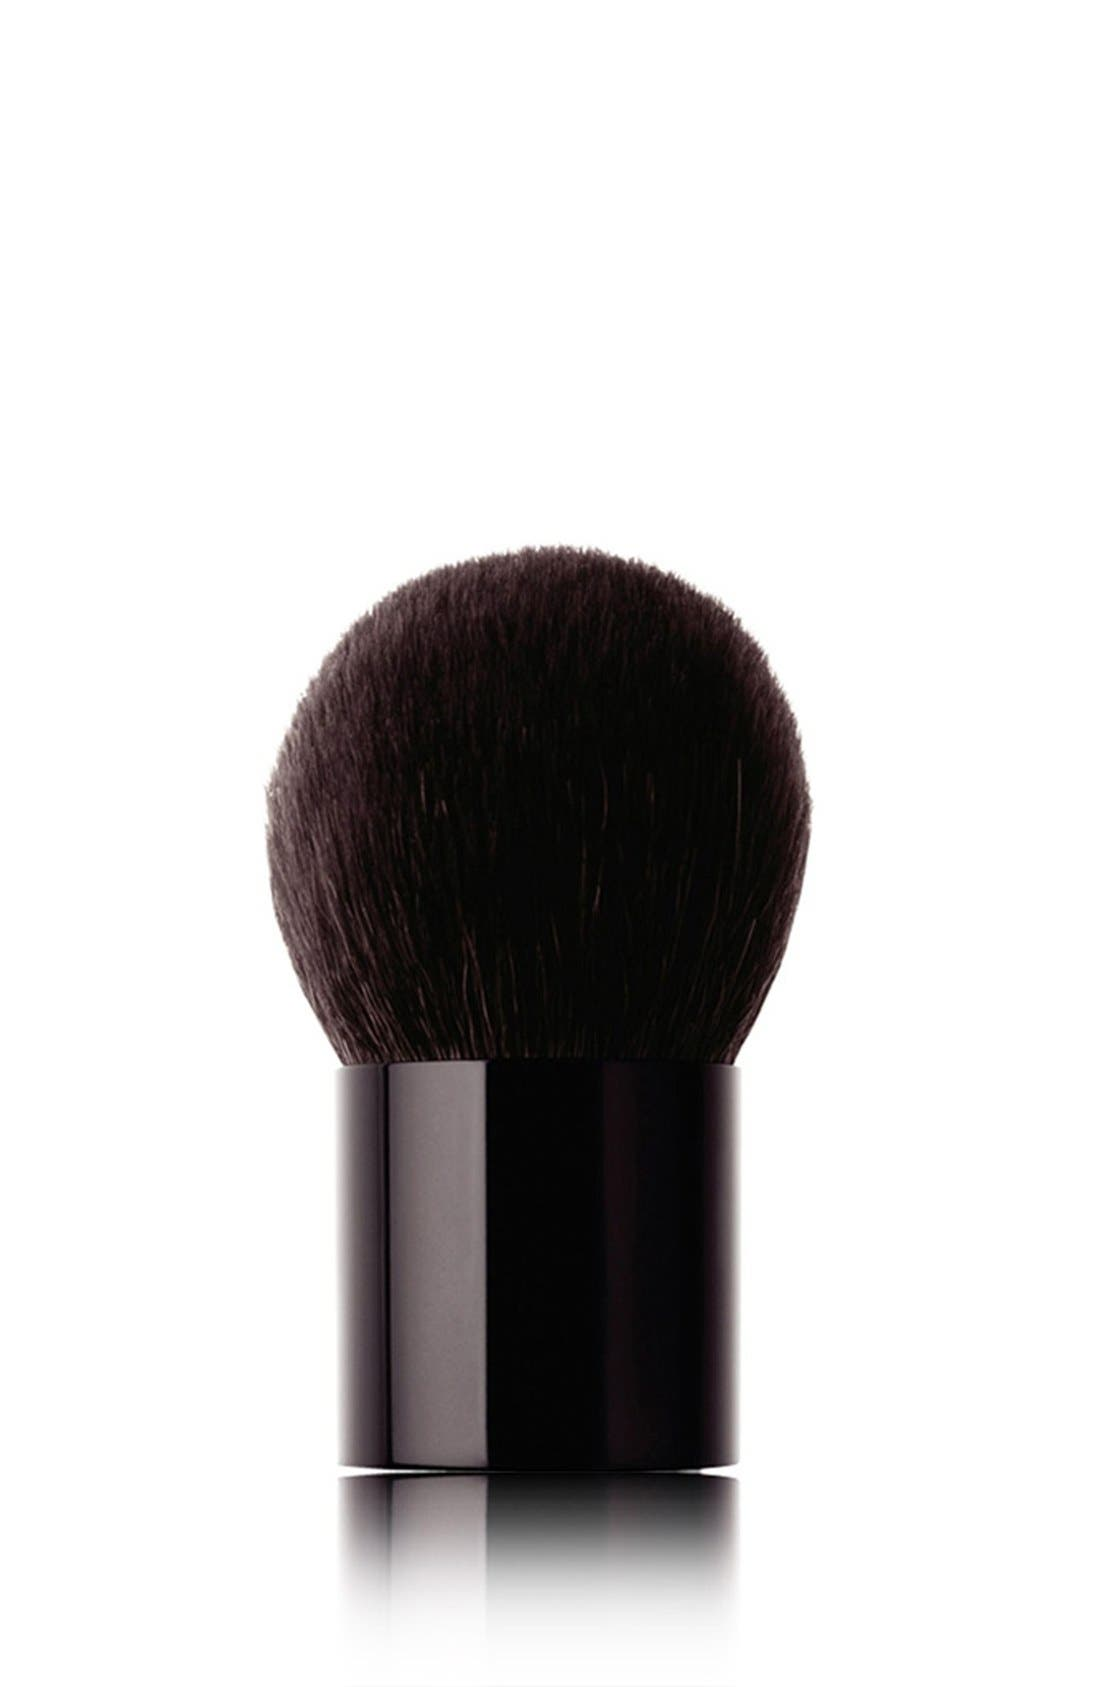 CHANEL PINCEAU RETOUCHE 